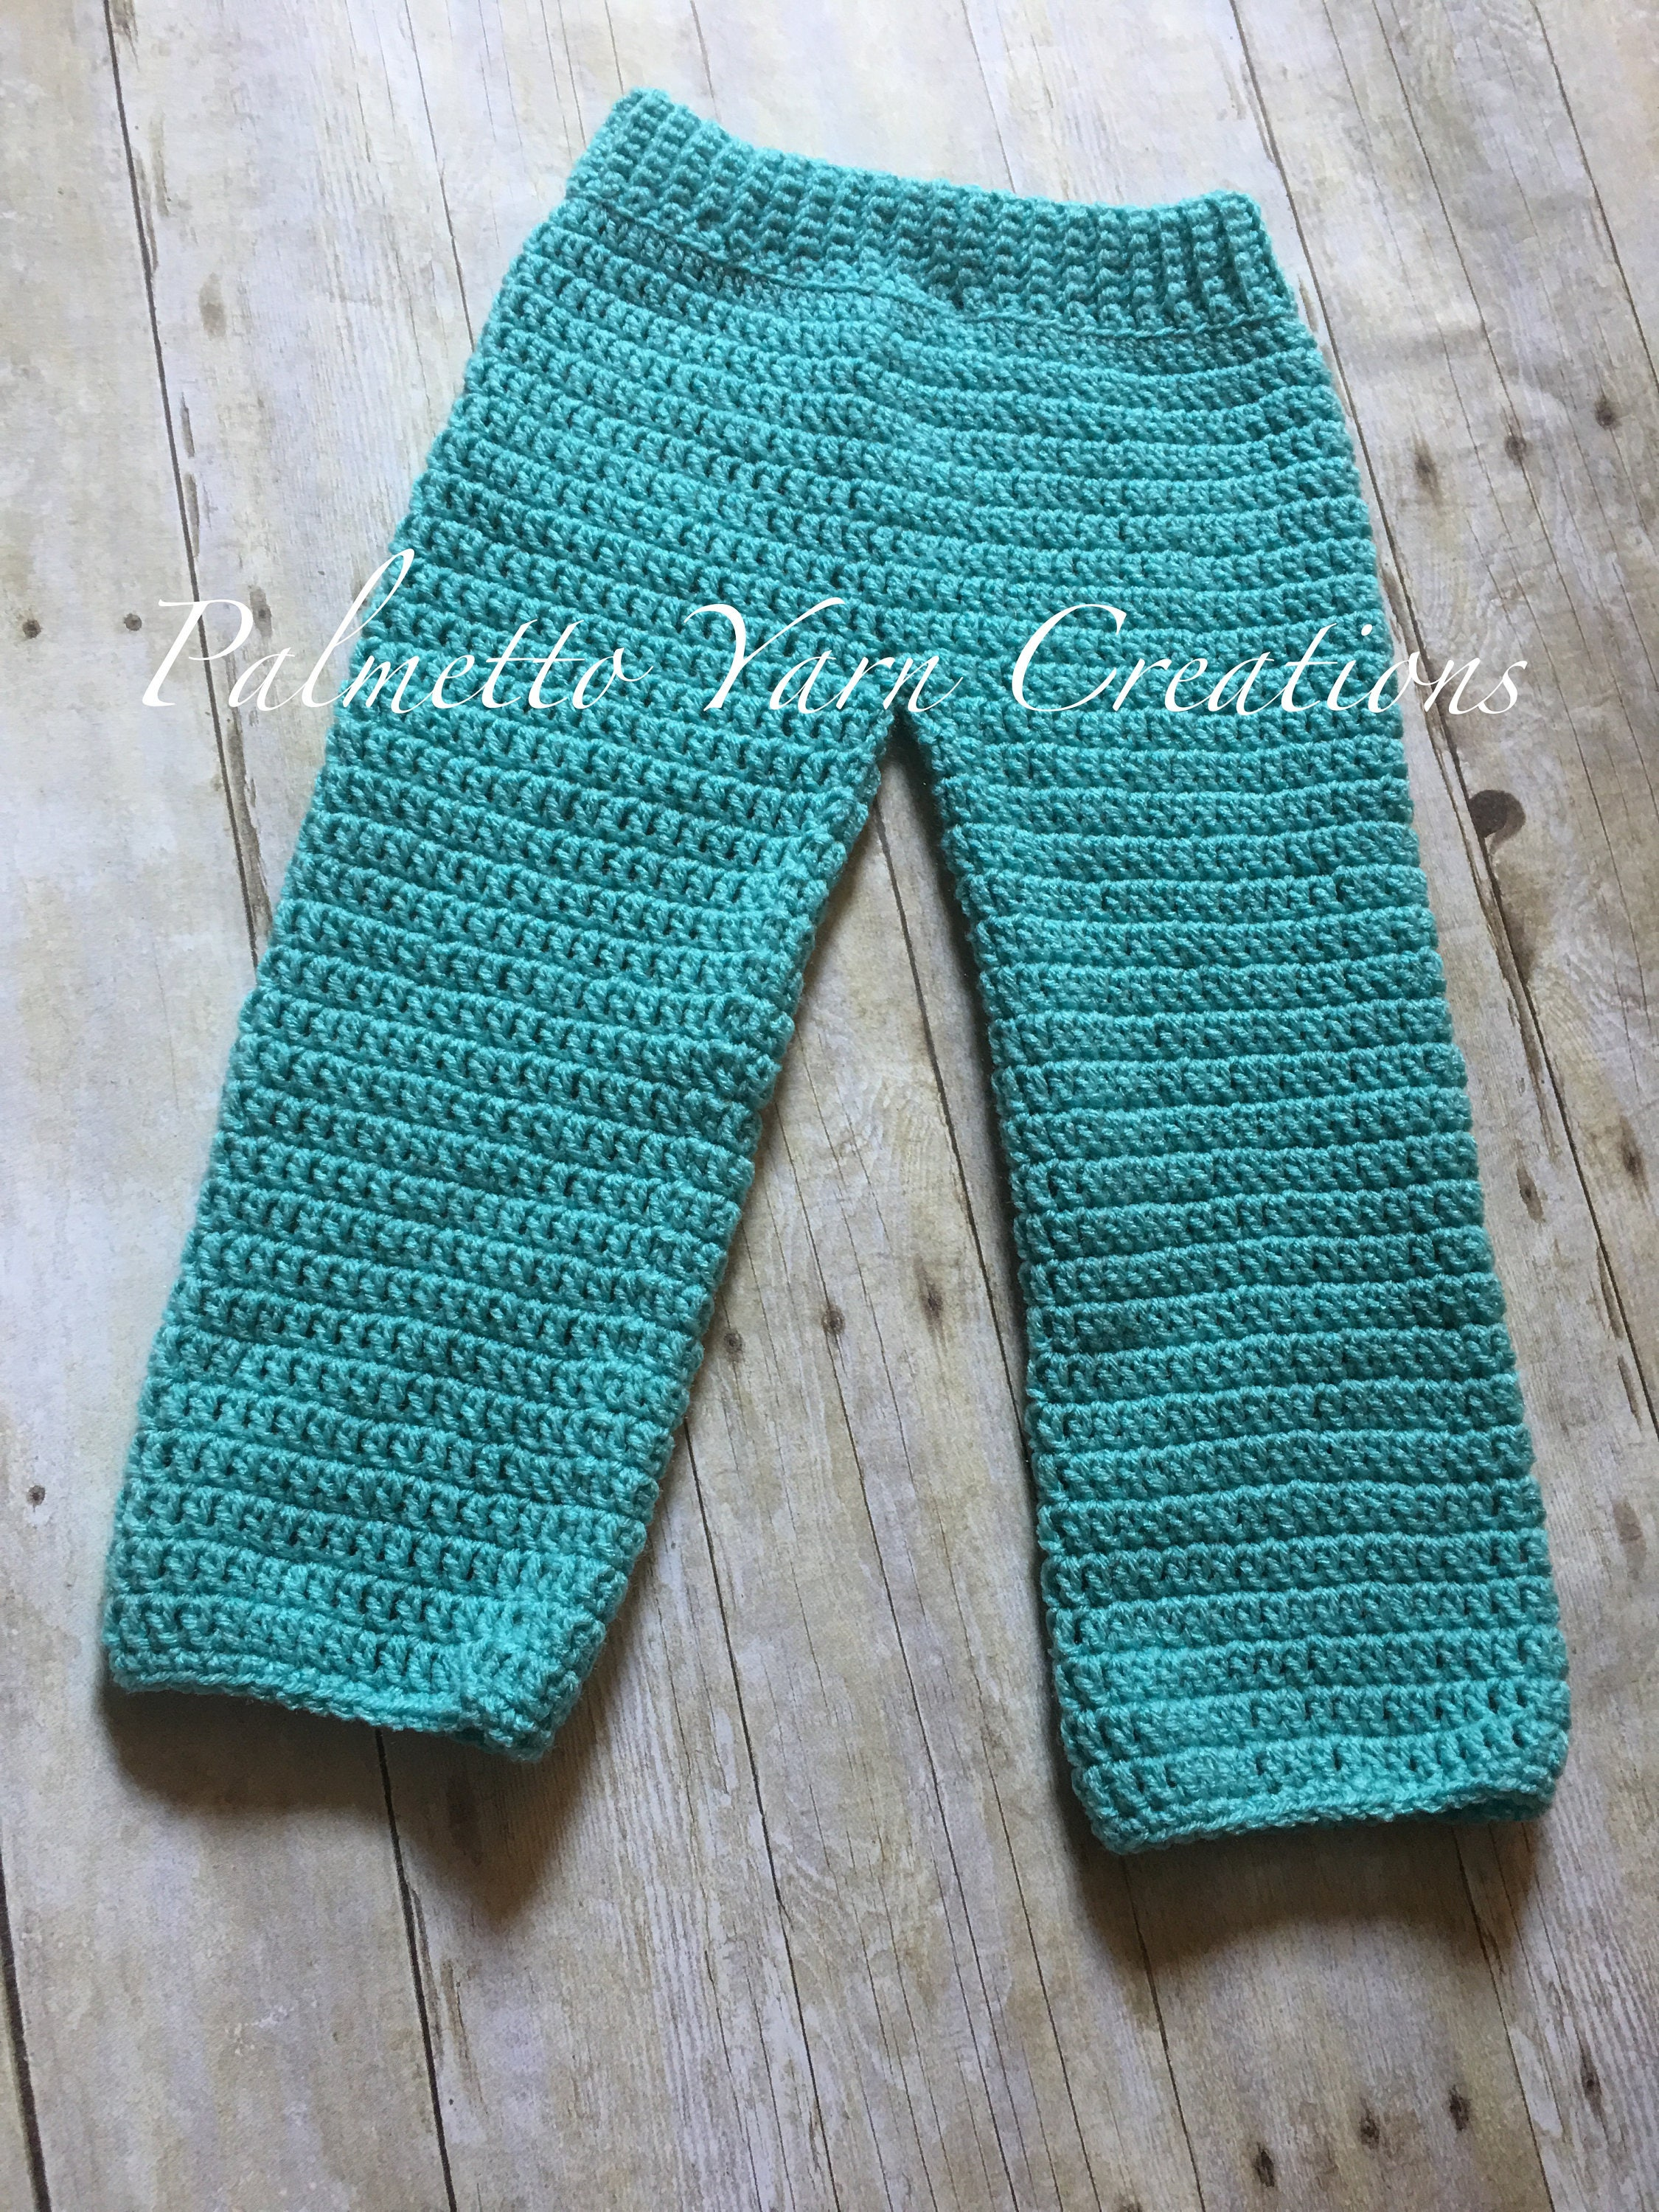 Crochet Baby Pants Pattern 12 18 Month Crochet Pants Photo Etsy